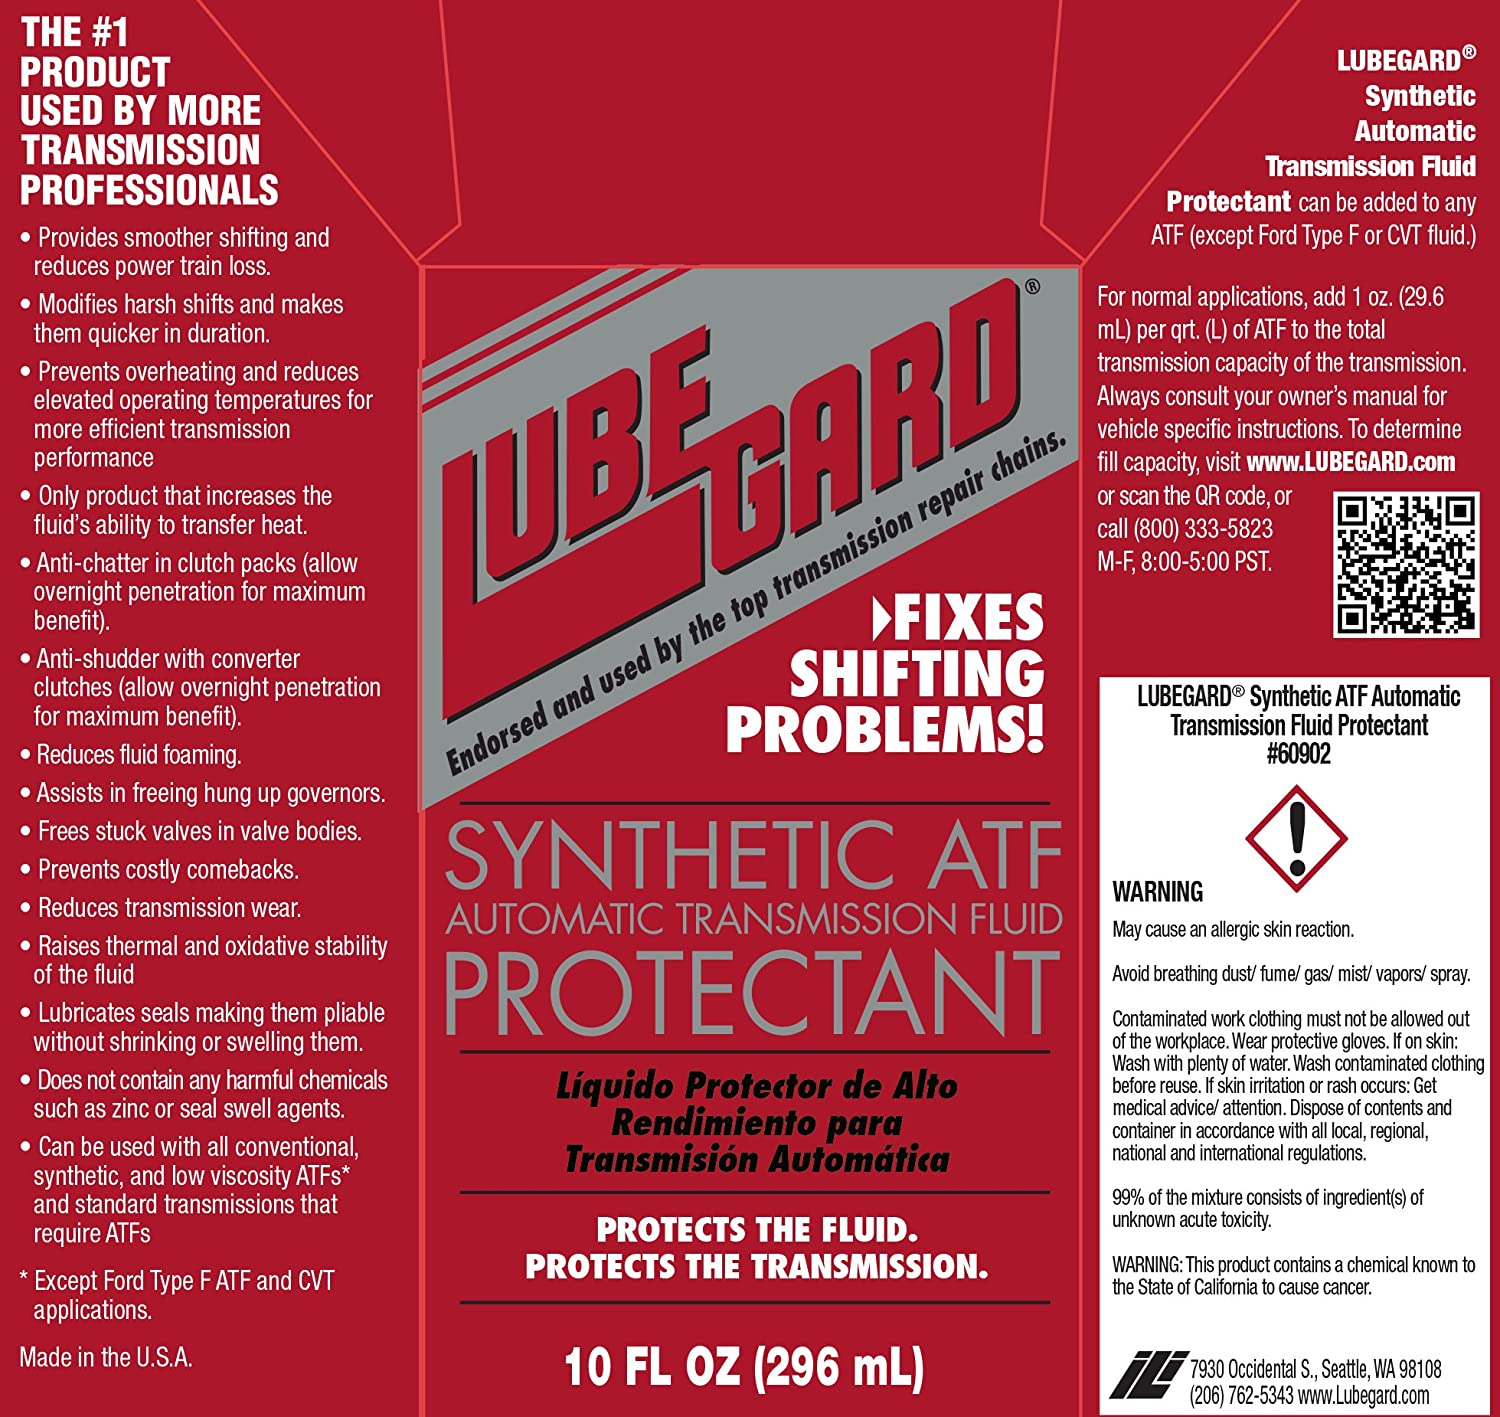 Lubegard 60902 Automatic Transmission Fluid Protectant, 10 oz